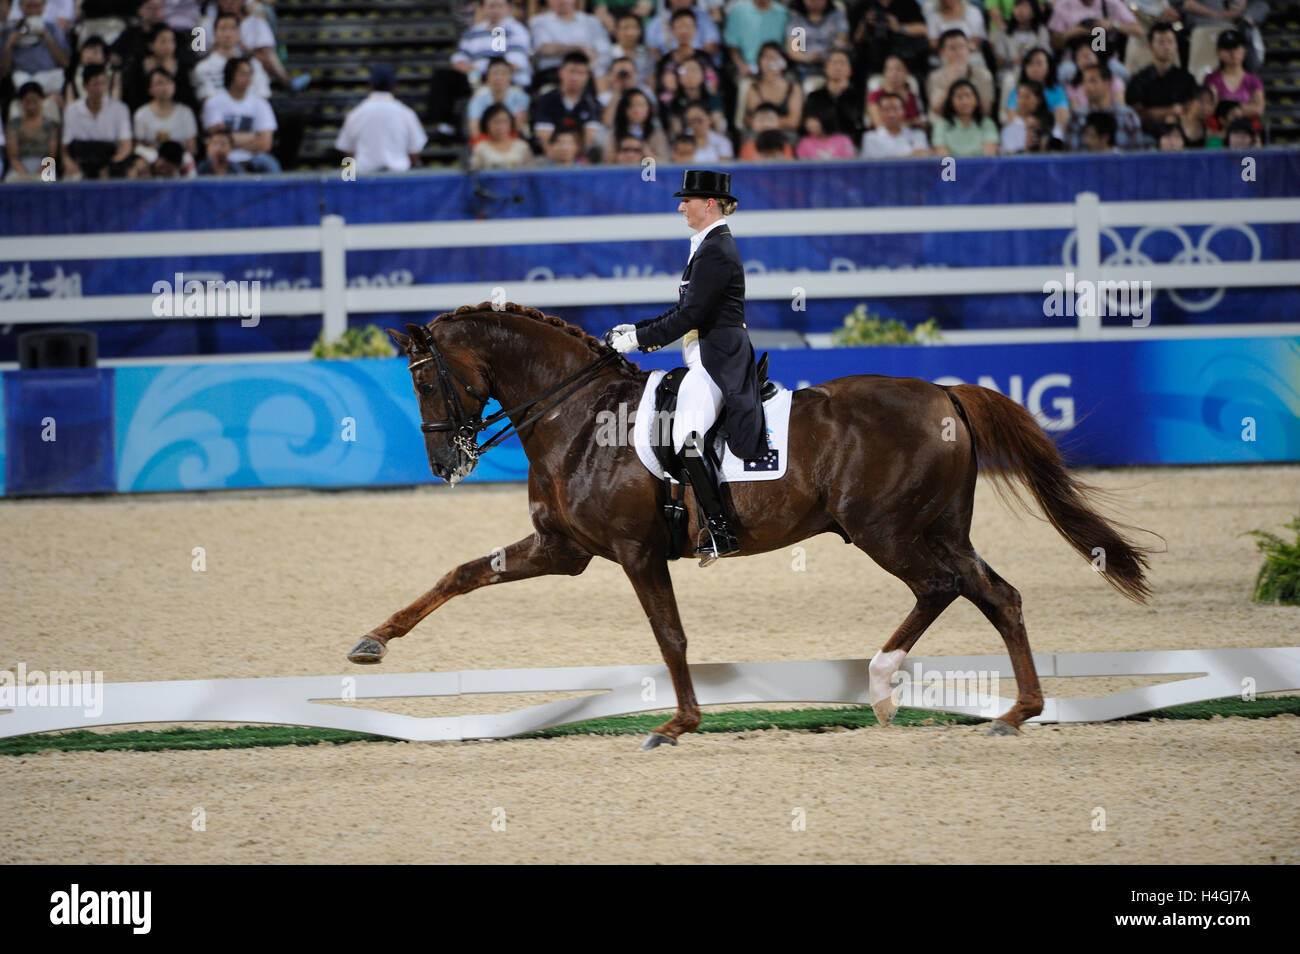 Olympic Games 2008, Hong Kong (Beijing Games) August 2008, Kristy Oatley-Nist (AUS) riding Quando-Quando, Grand - Stock Image